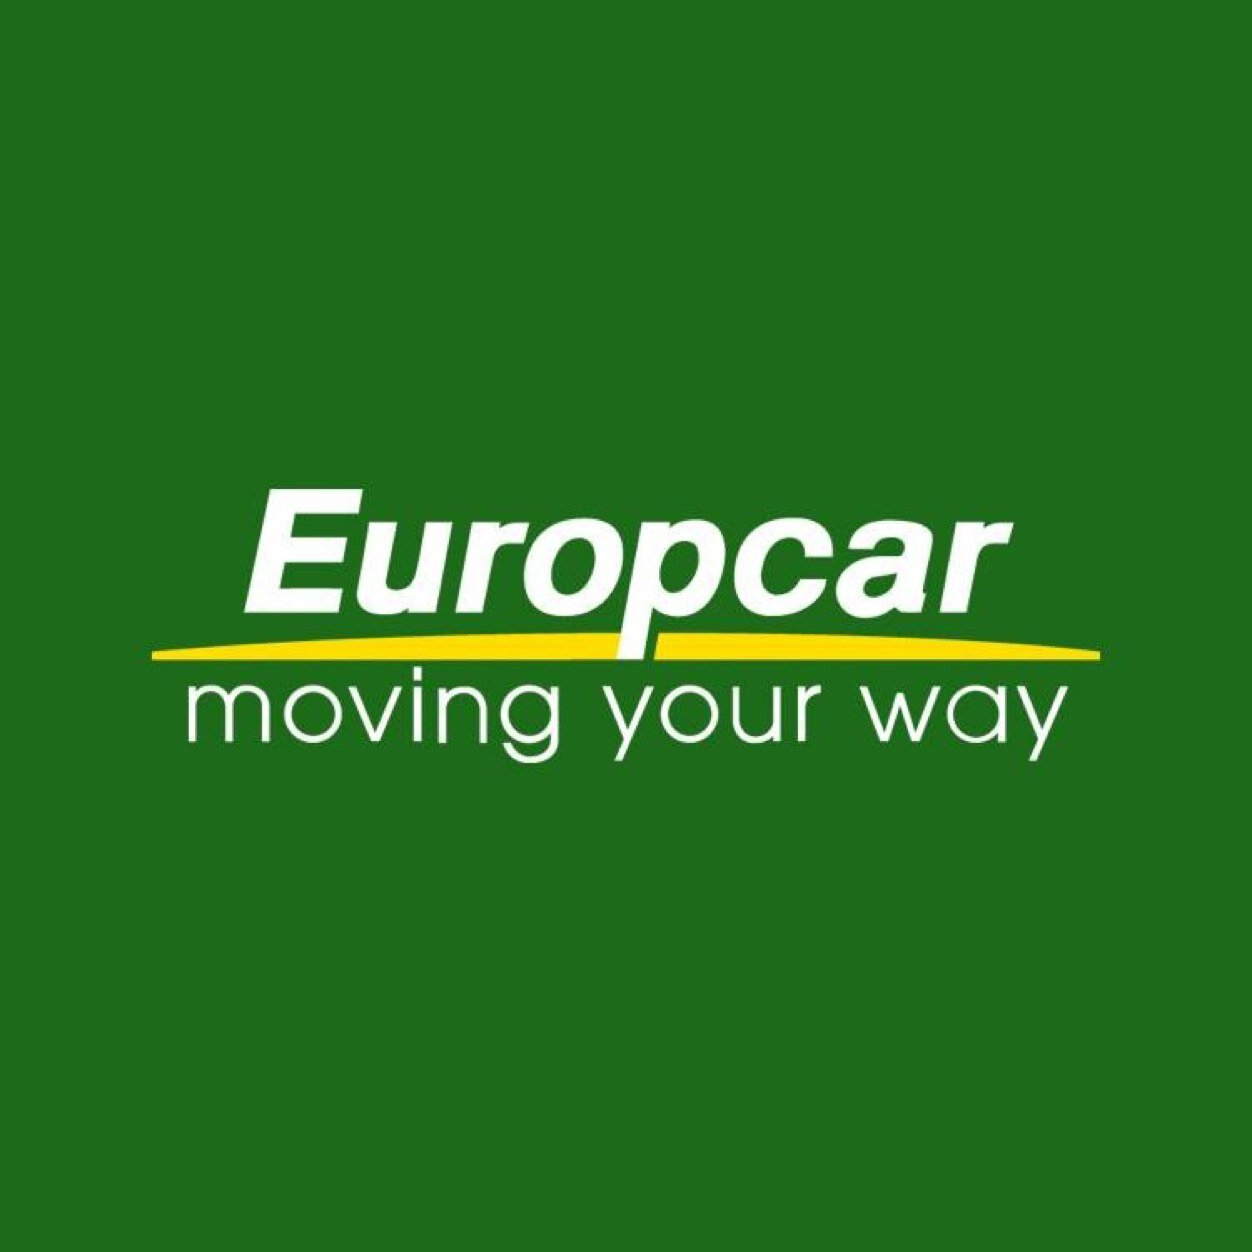 Europcar In Ireland At Dublin Airport